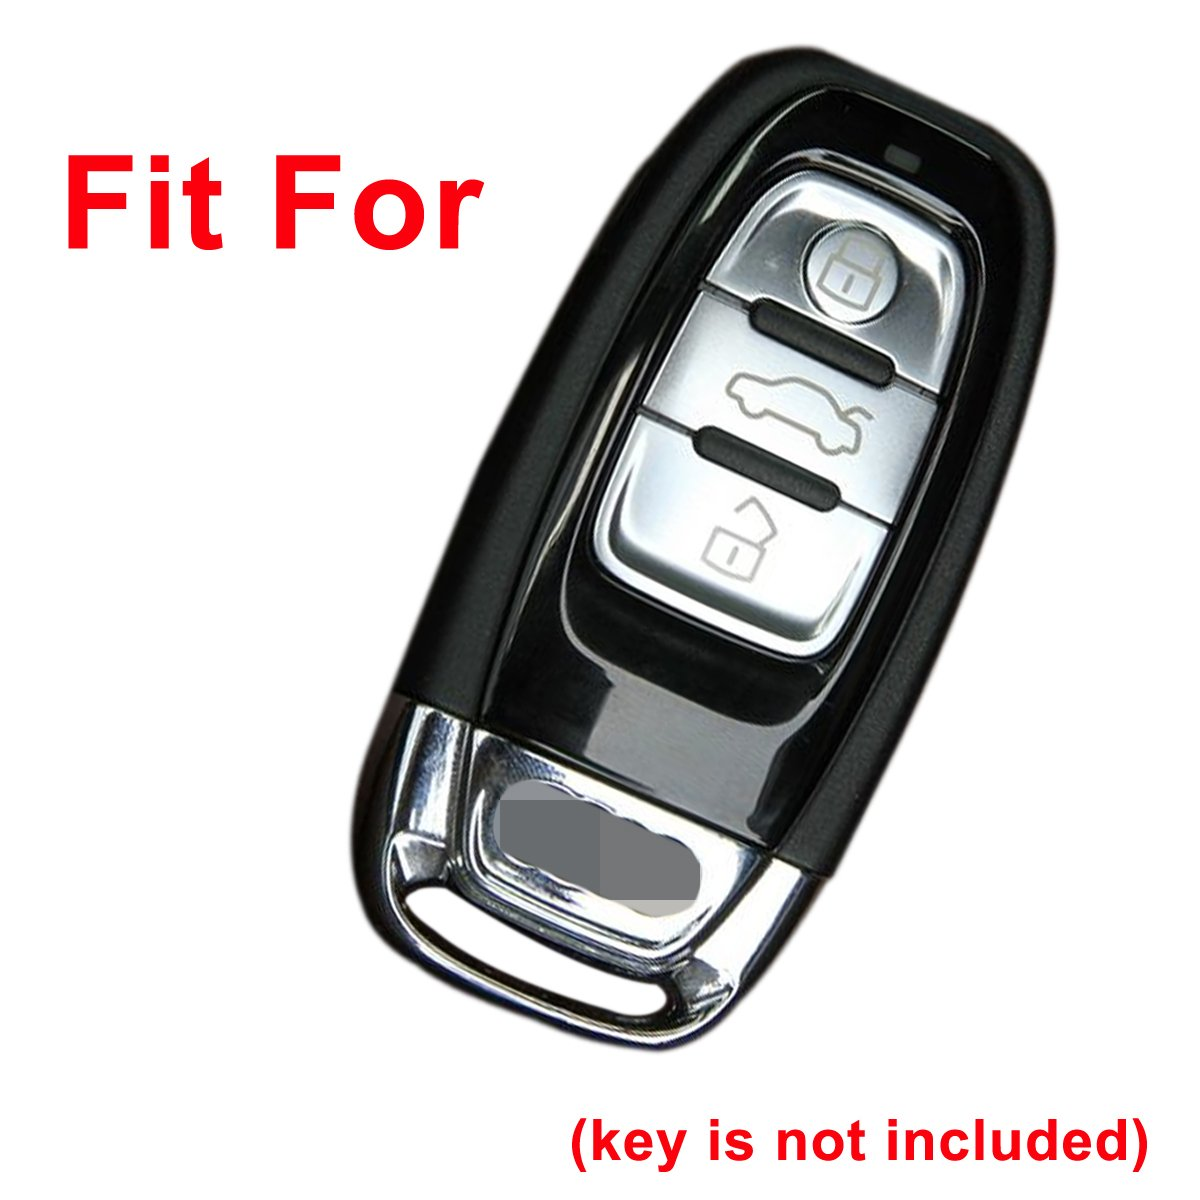 Coolbestda Leather 4Buttons Key Fob Protector Keyless Holder Cover Skin Jacket Remote Control Shell for Audi A1 A3 A4 A5 A6 A7 A8 Q5 Q7 R8 S5 S7 Q5 RS Insert Key to Ignition NOT FIT